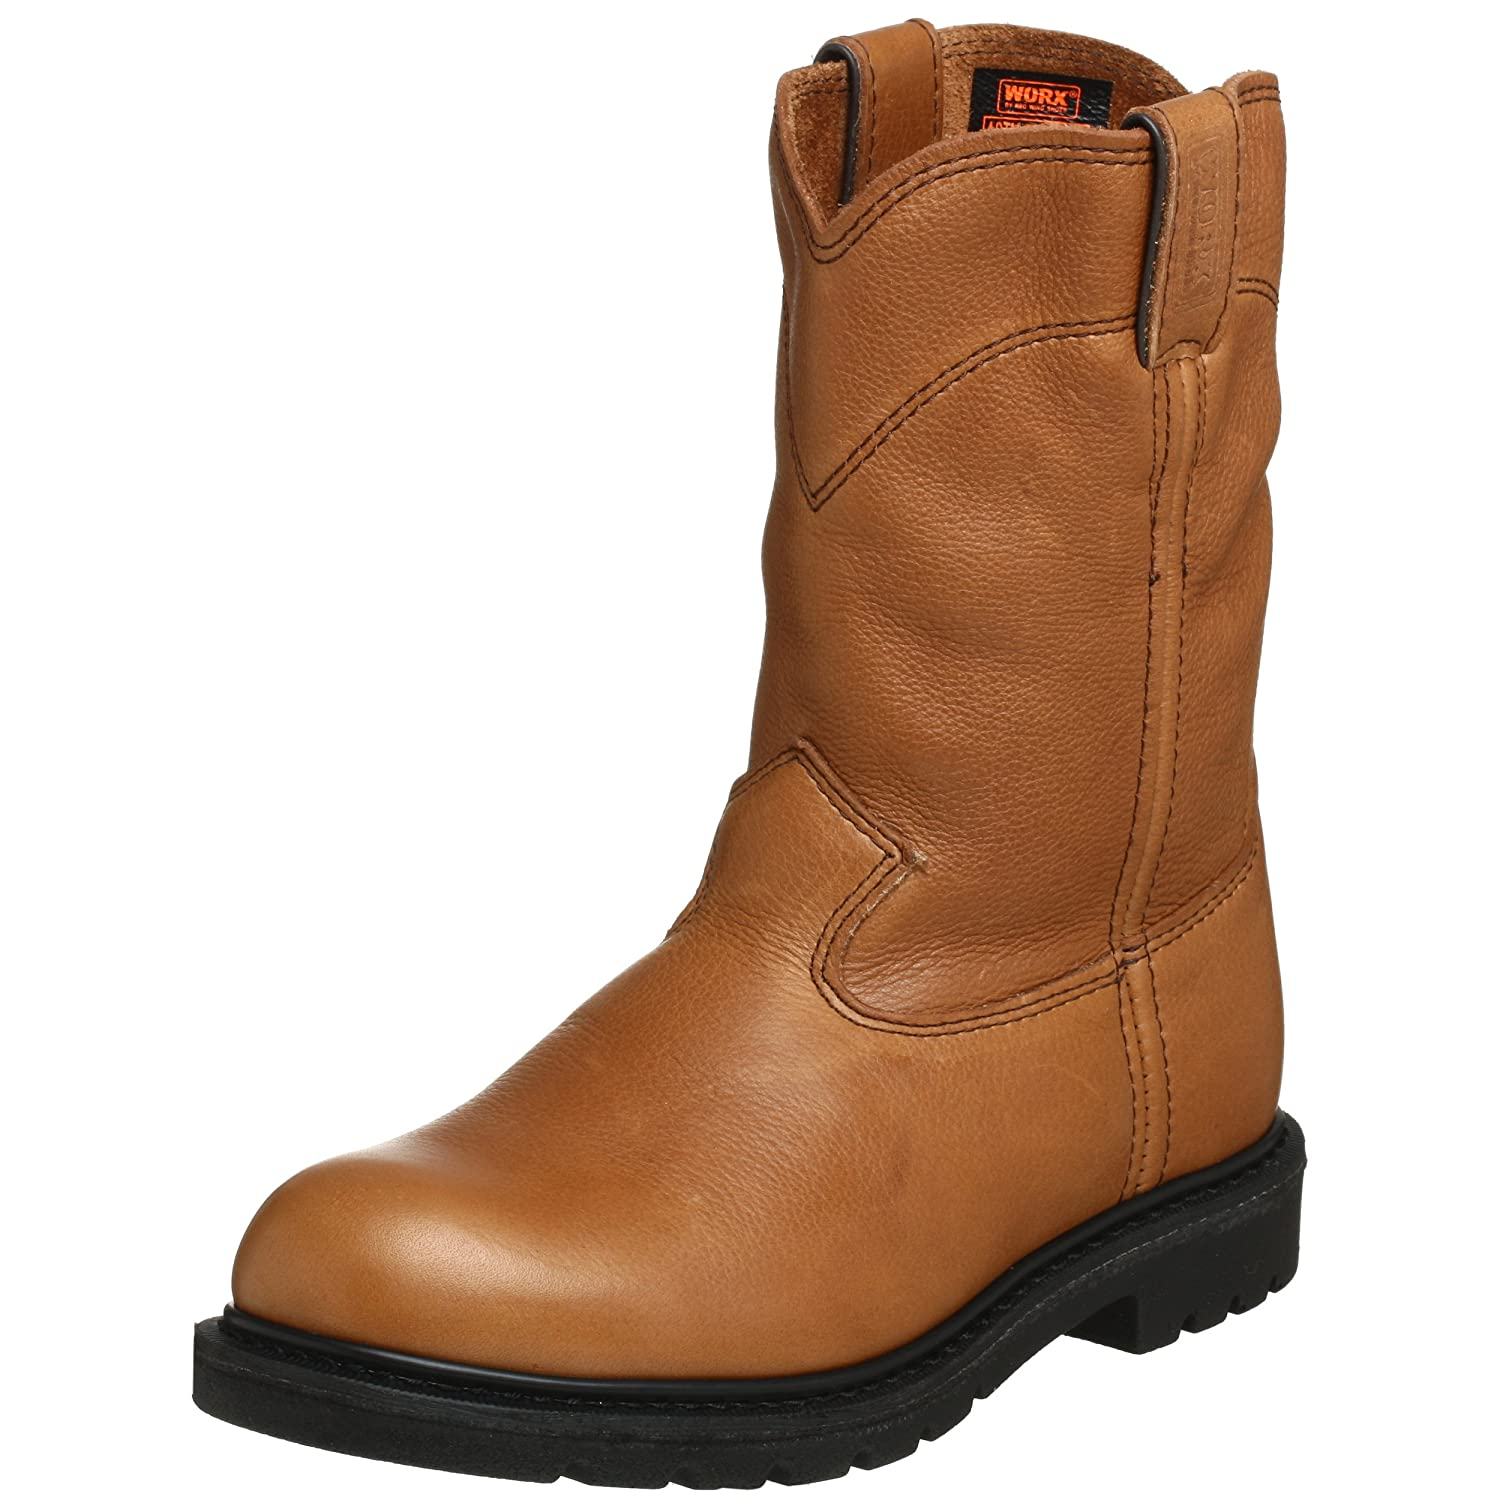 926f187fb42 Amazon.com | WORX by Red Wing Shoes Men's 5455 10